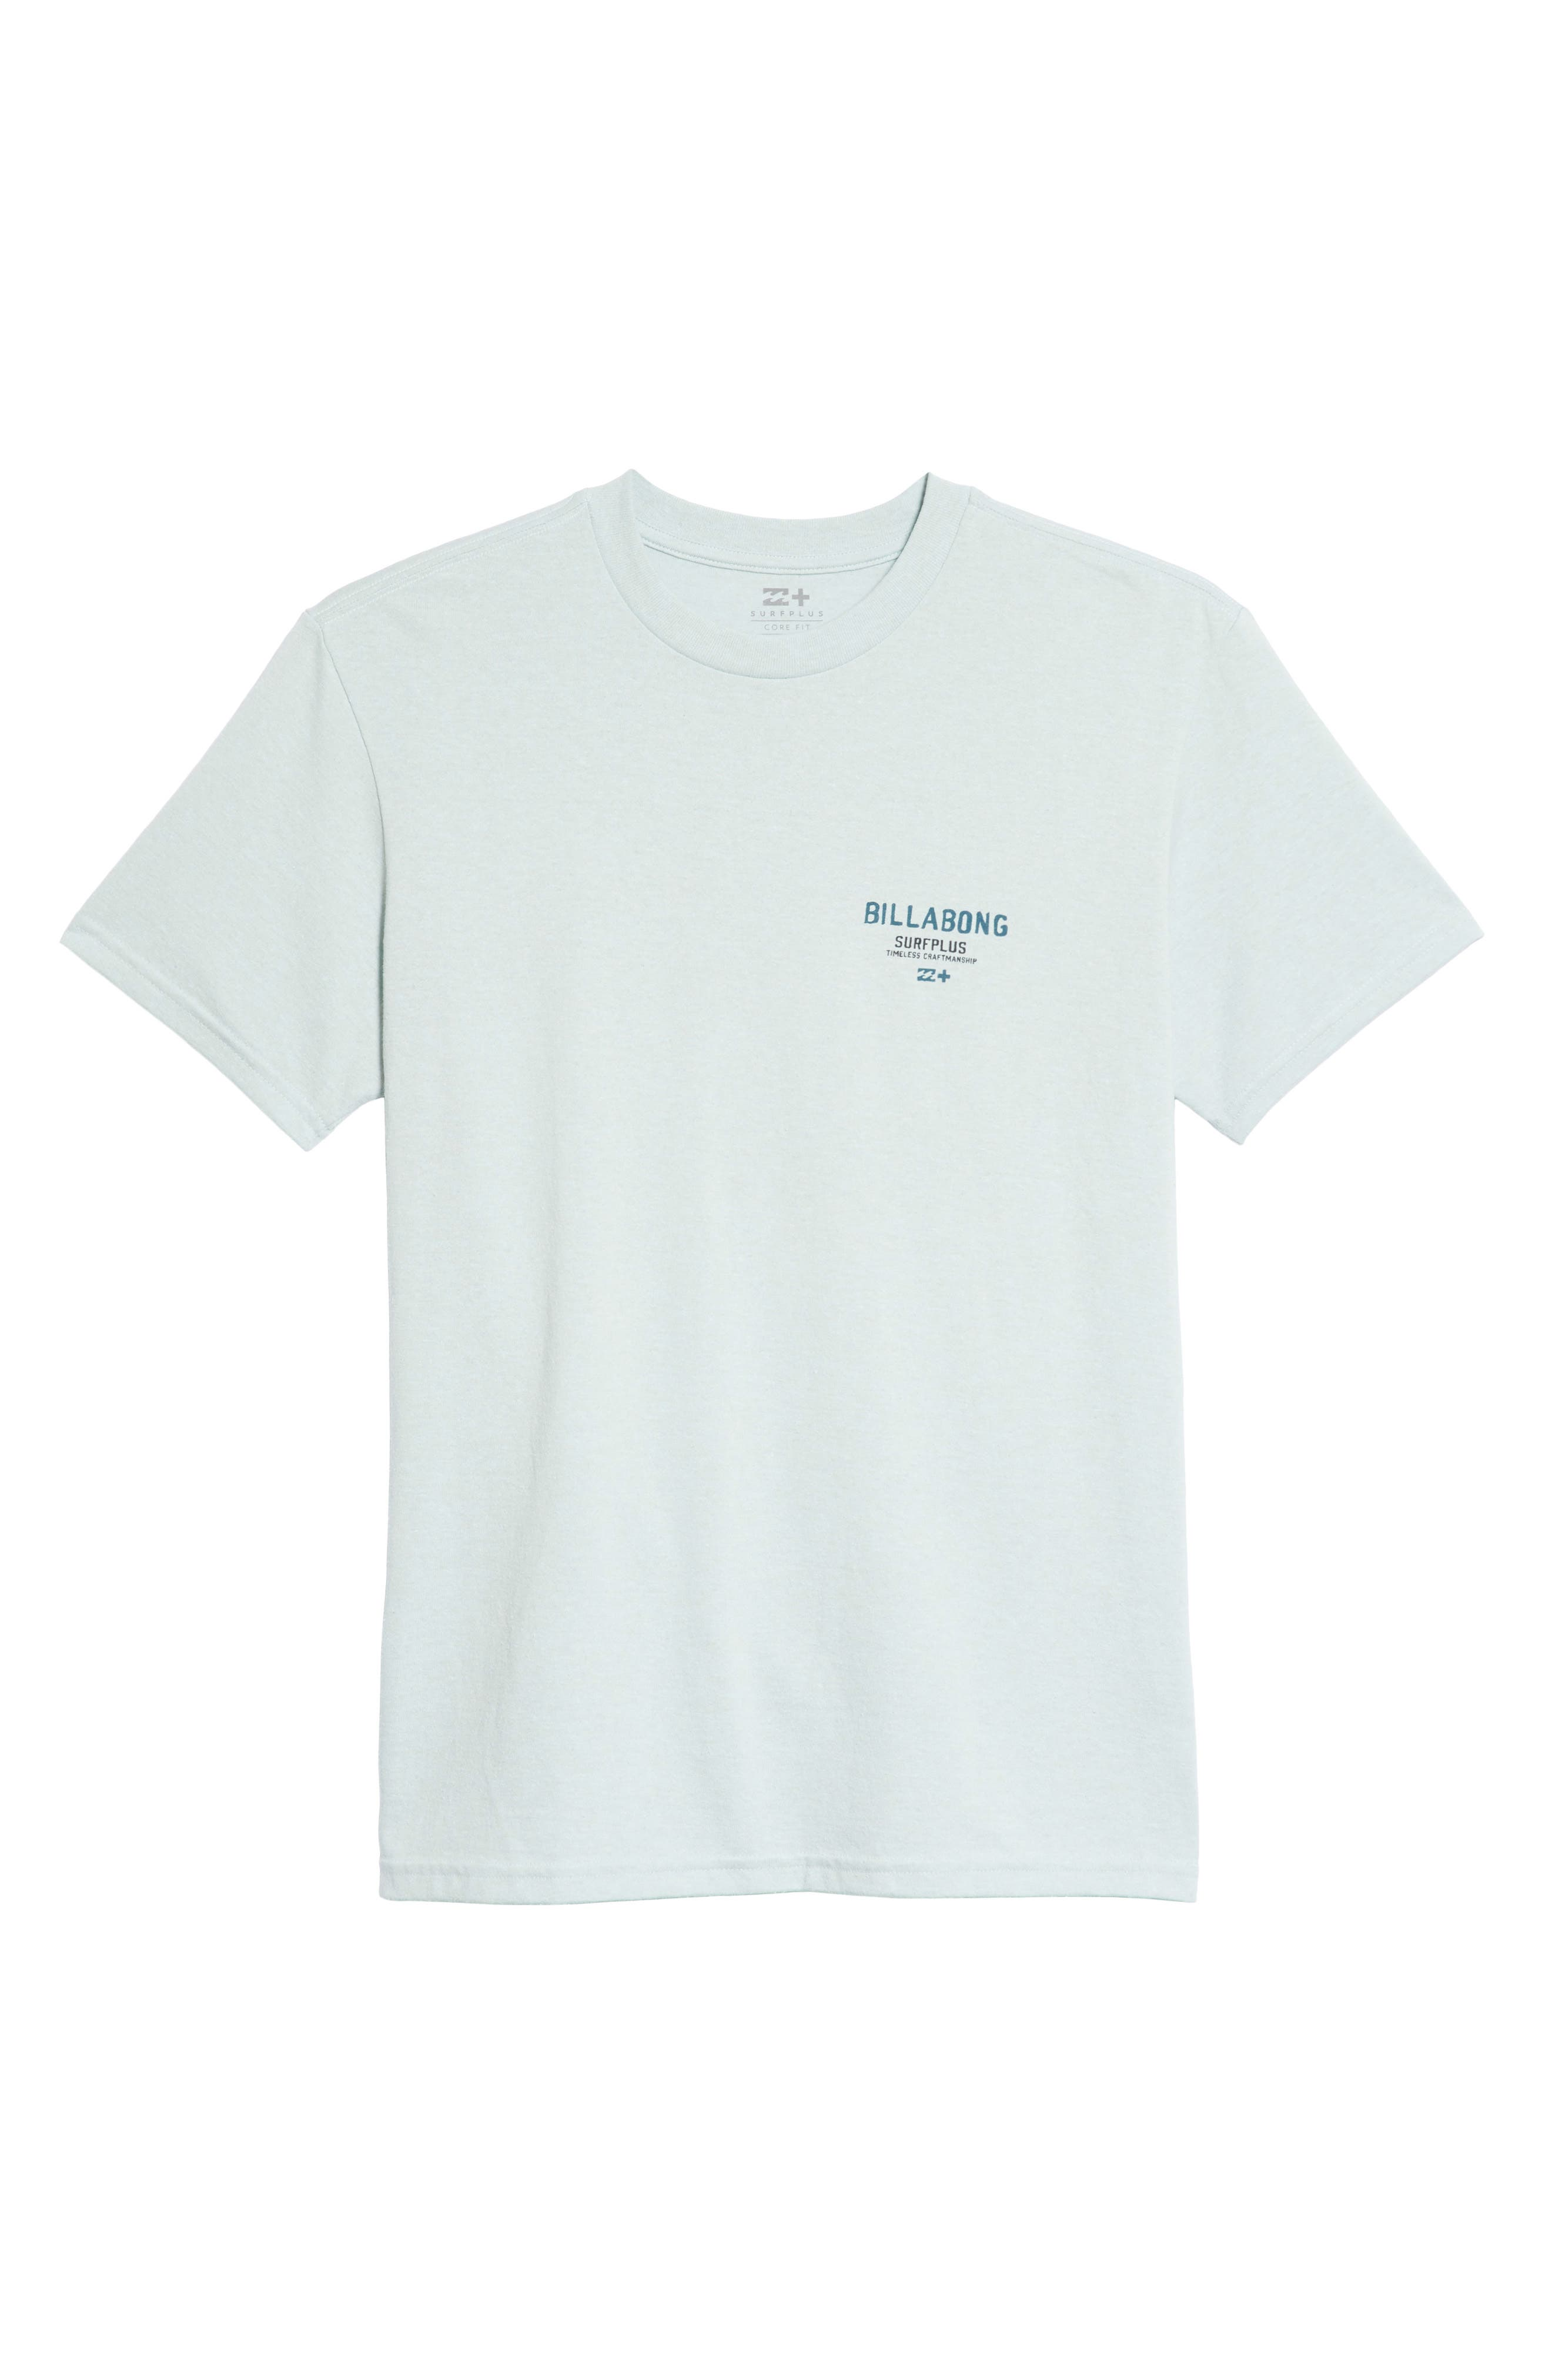 Dawn Patrol Graphic T-Shirt,                             Alternate thumbnail 6, color,                             400